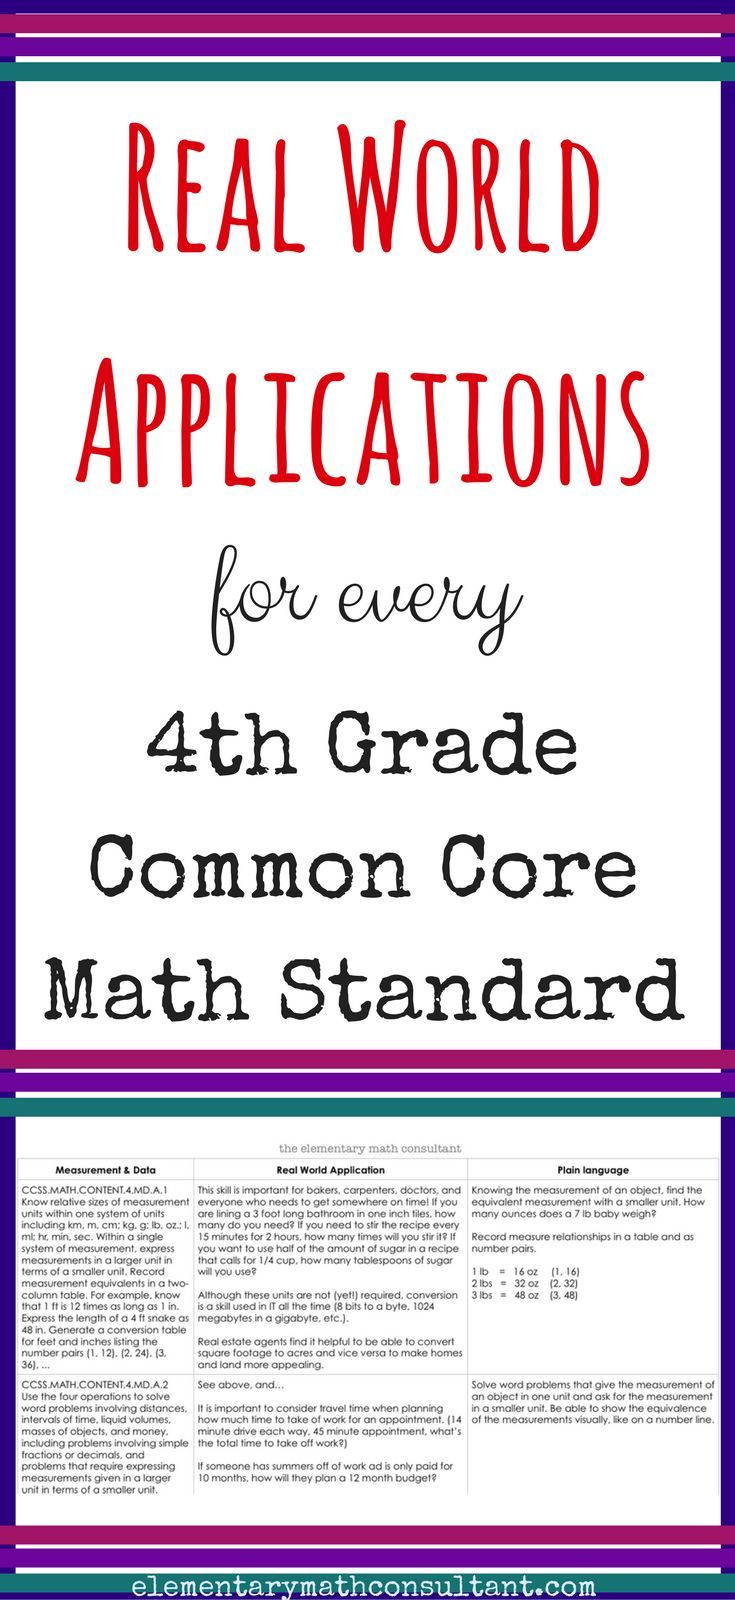 4th grade teachers, this resource provides real world applications and plain language for every 4th Grade Common Core math standard! It is helpful for realistic word problems, explaining why students learn this math, and communicating standards in clear language. https://www.teacherspayteachers.com/Product/Real-World-Application-Plain-Language-for-4th-Grade-Common-Core-Math-Standards-3514317